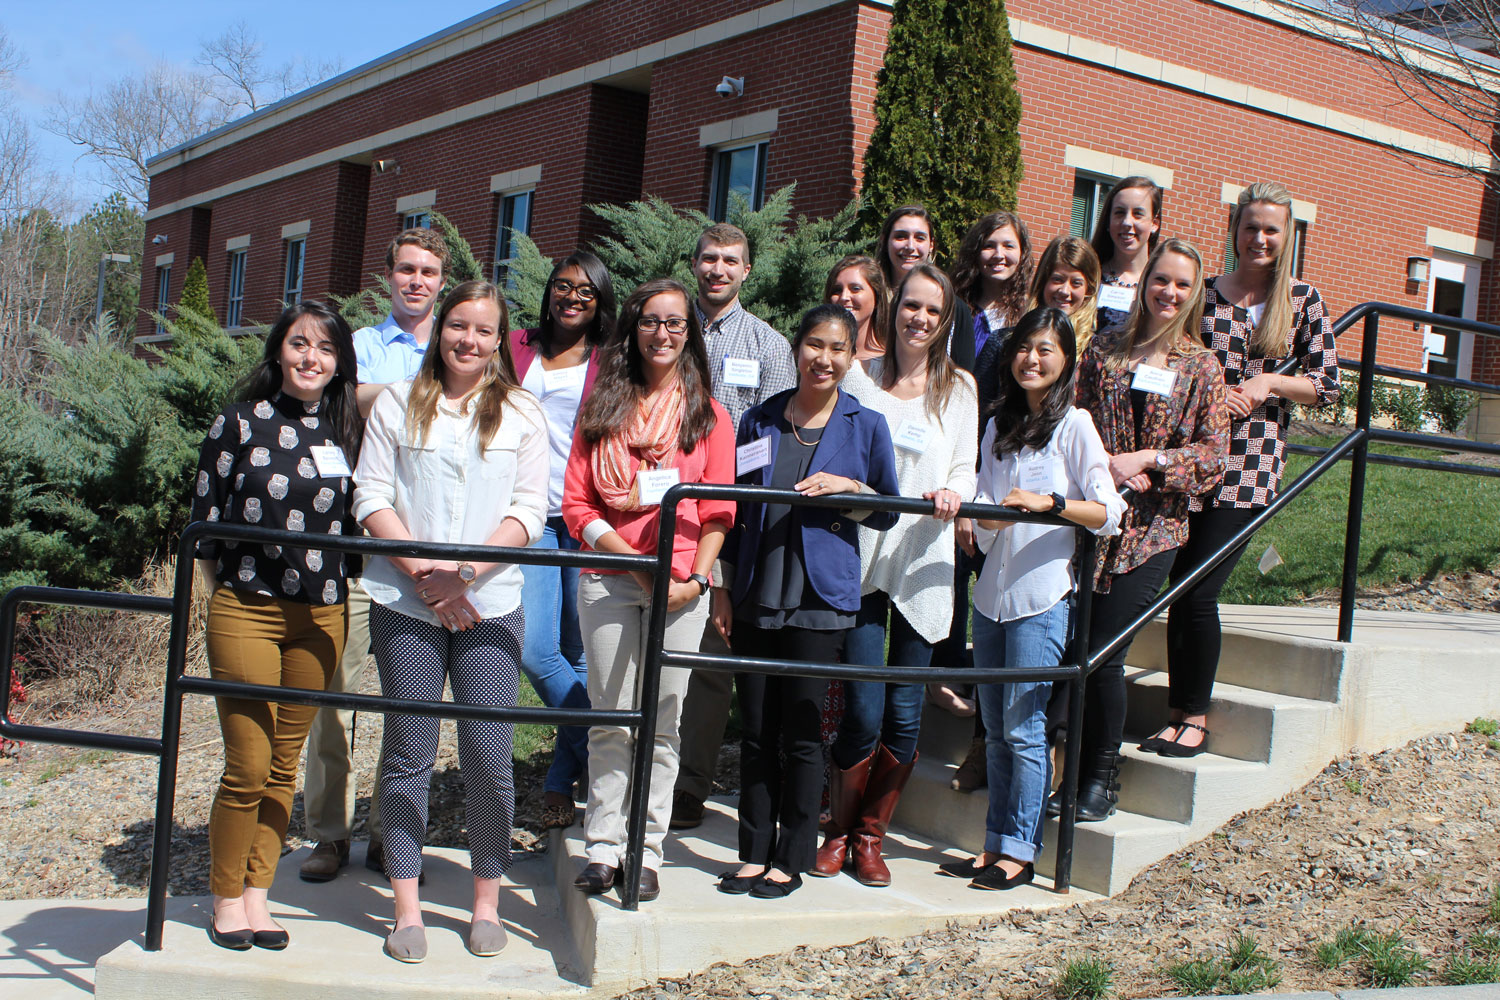 Physician Assistant Studies students